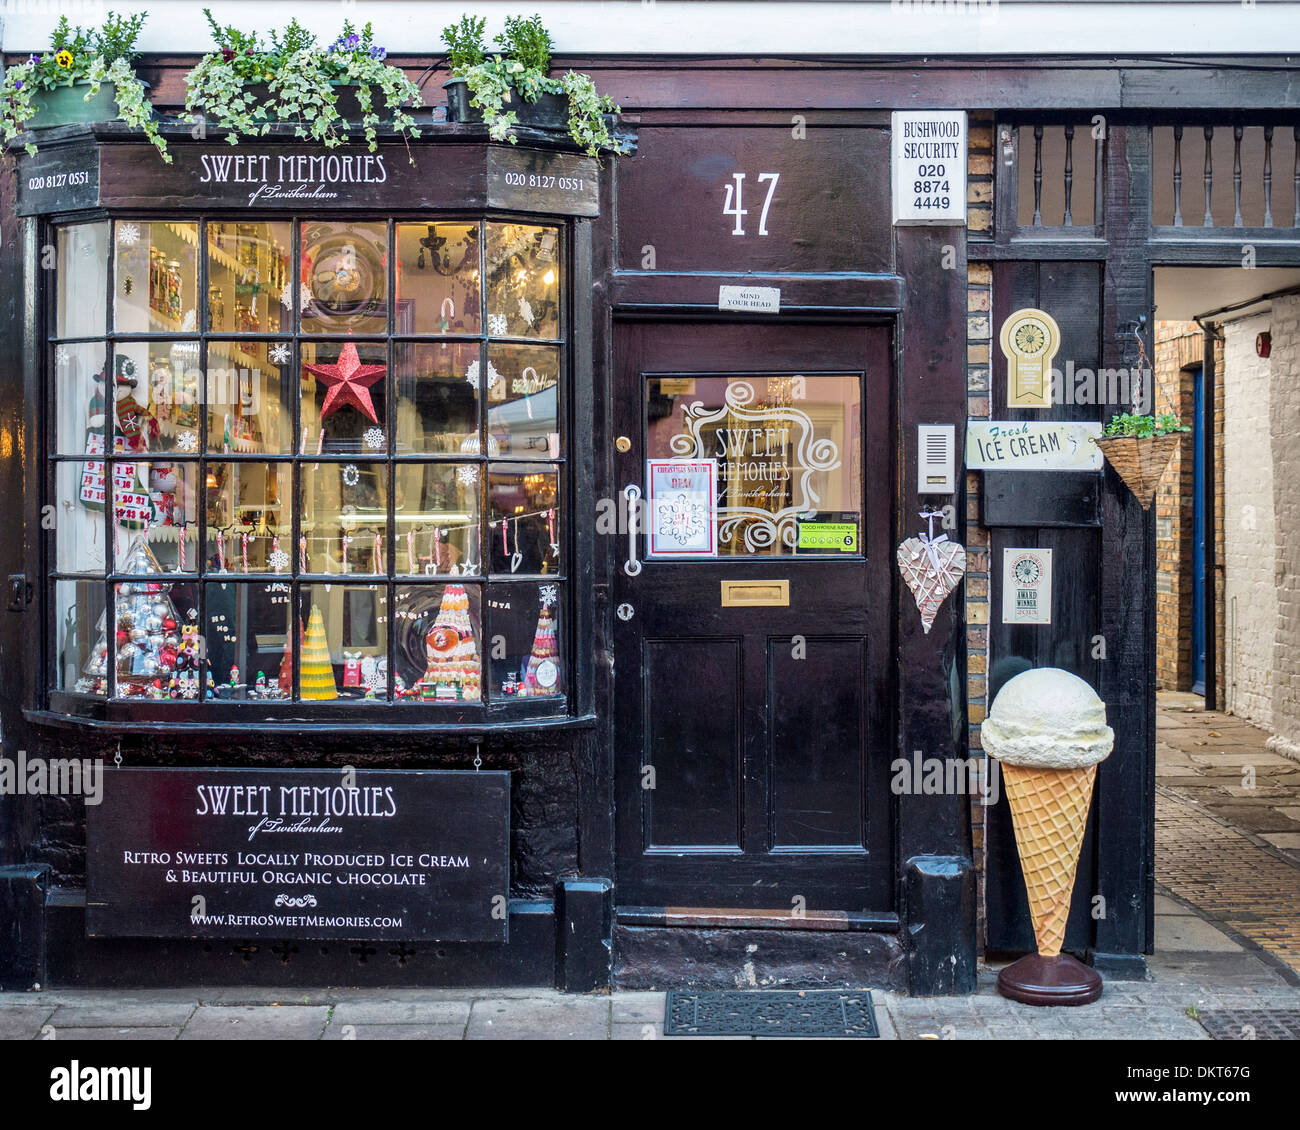 Sweet Memories - an old fashioned sweet and ice-cream shop in Church Street, Twickenham, UK - Stock Image